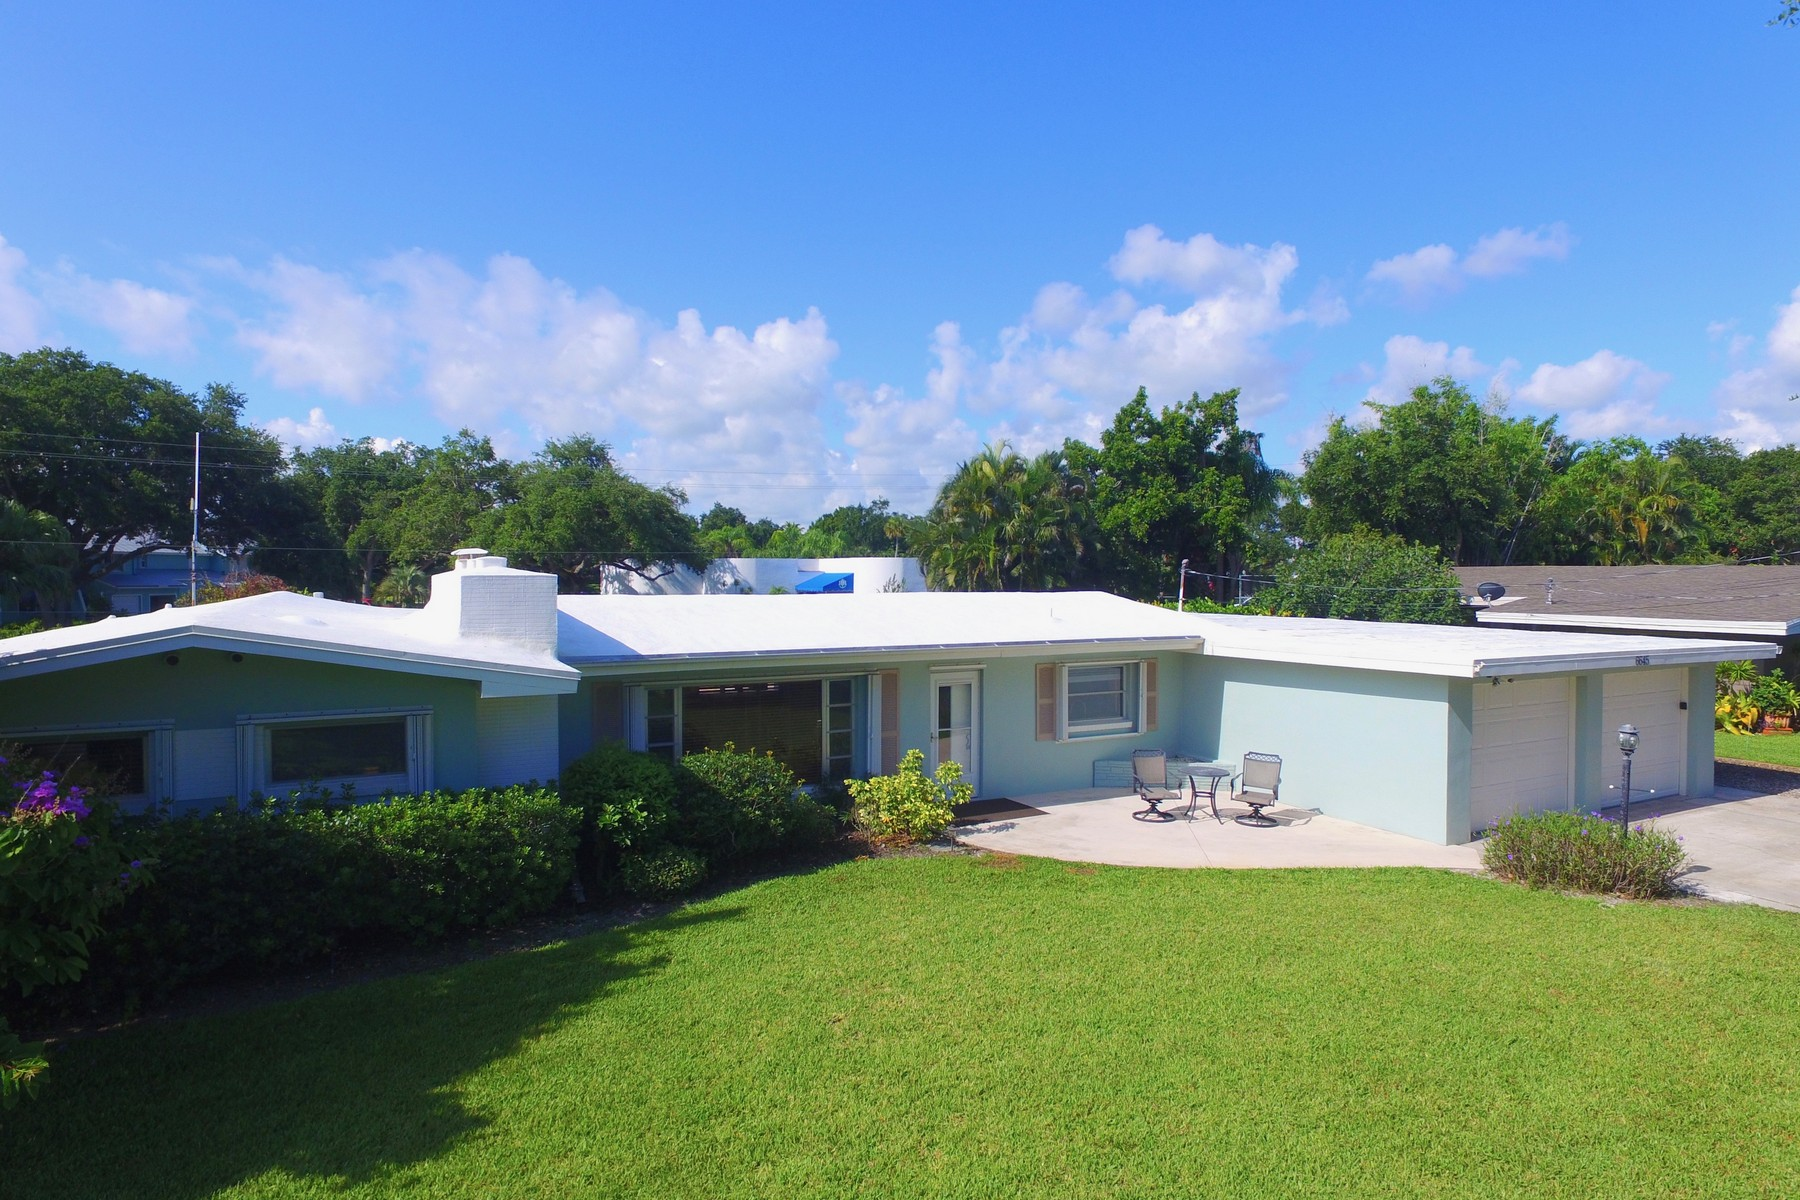 Property for Sale at Newly Renovated with Beachy Chic Style! 6645 110th Street Sebastian, Florida 32958 United States